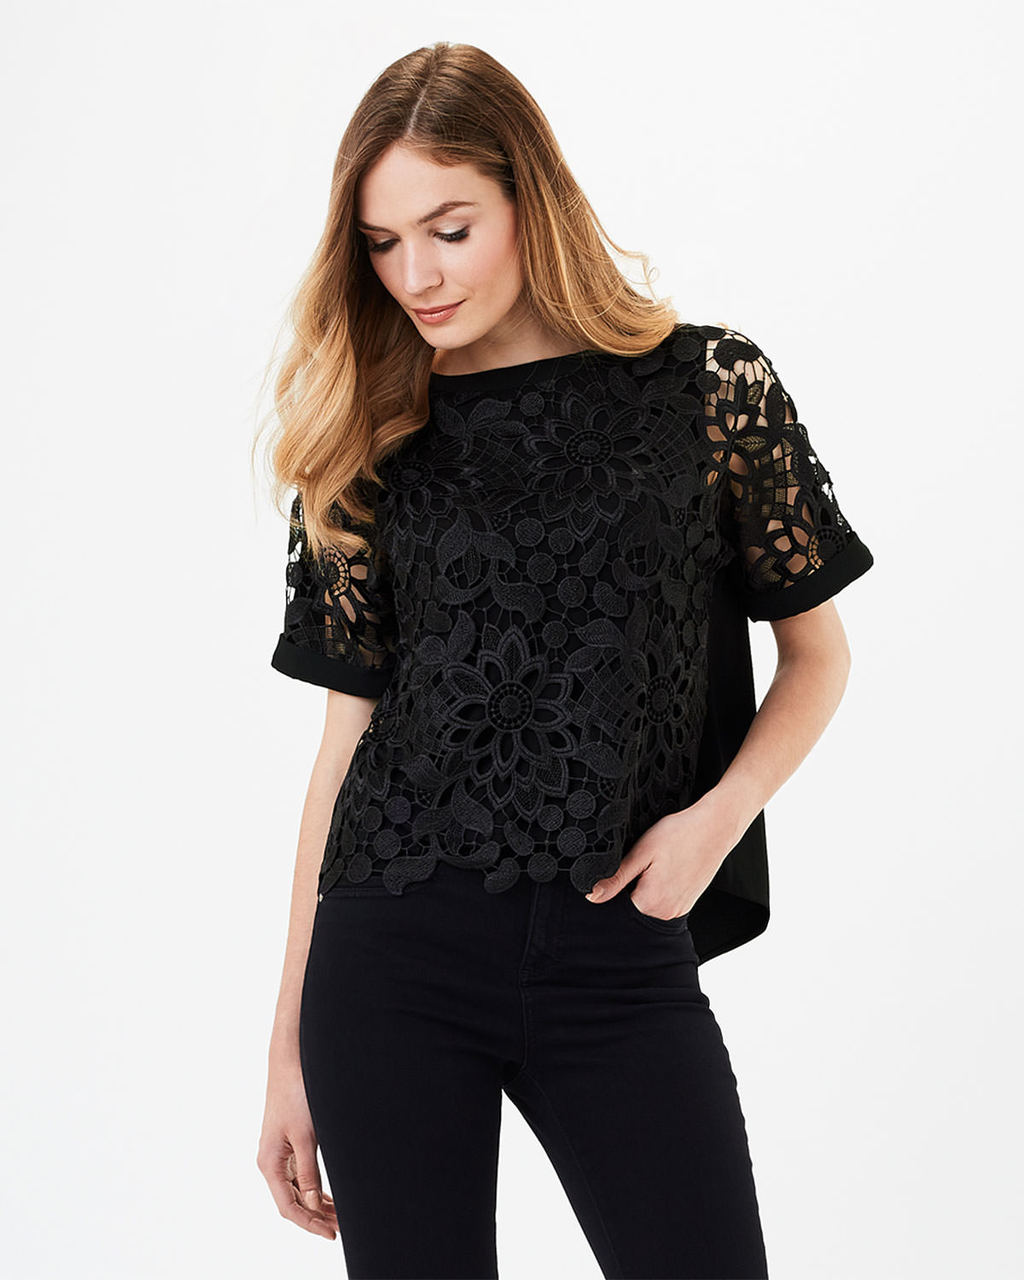 Georgie Lace Front Blouse - neckline: slash/boat neckline; pattern: plain; style: blouse; predominant colour: black; occasions: evening; length: standard; fibres: polyester/polyamide - 100%; fit: body skimming; sleeve length: short sleeve; sleeve style: standard; texture group: lace; pattern type: fabric; embellishment: lace; shoulder detail: sheer at shoulder; season: s/s 2016; wardrobe: event